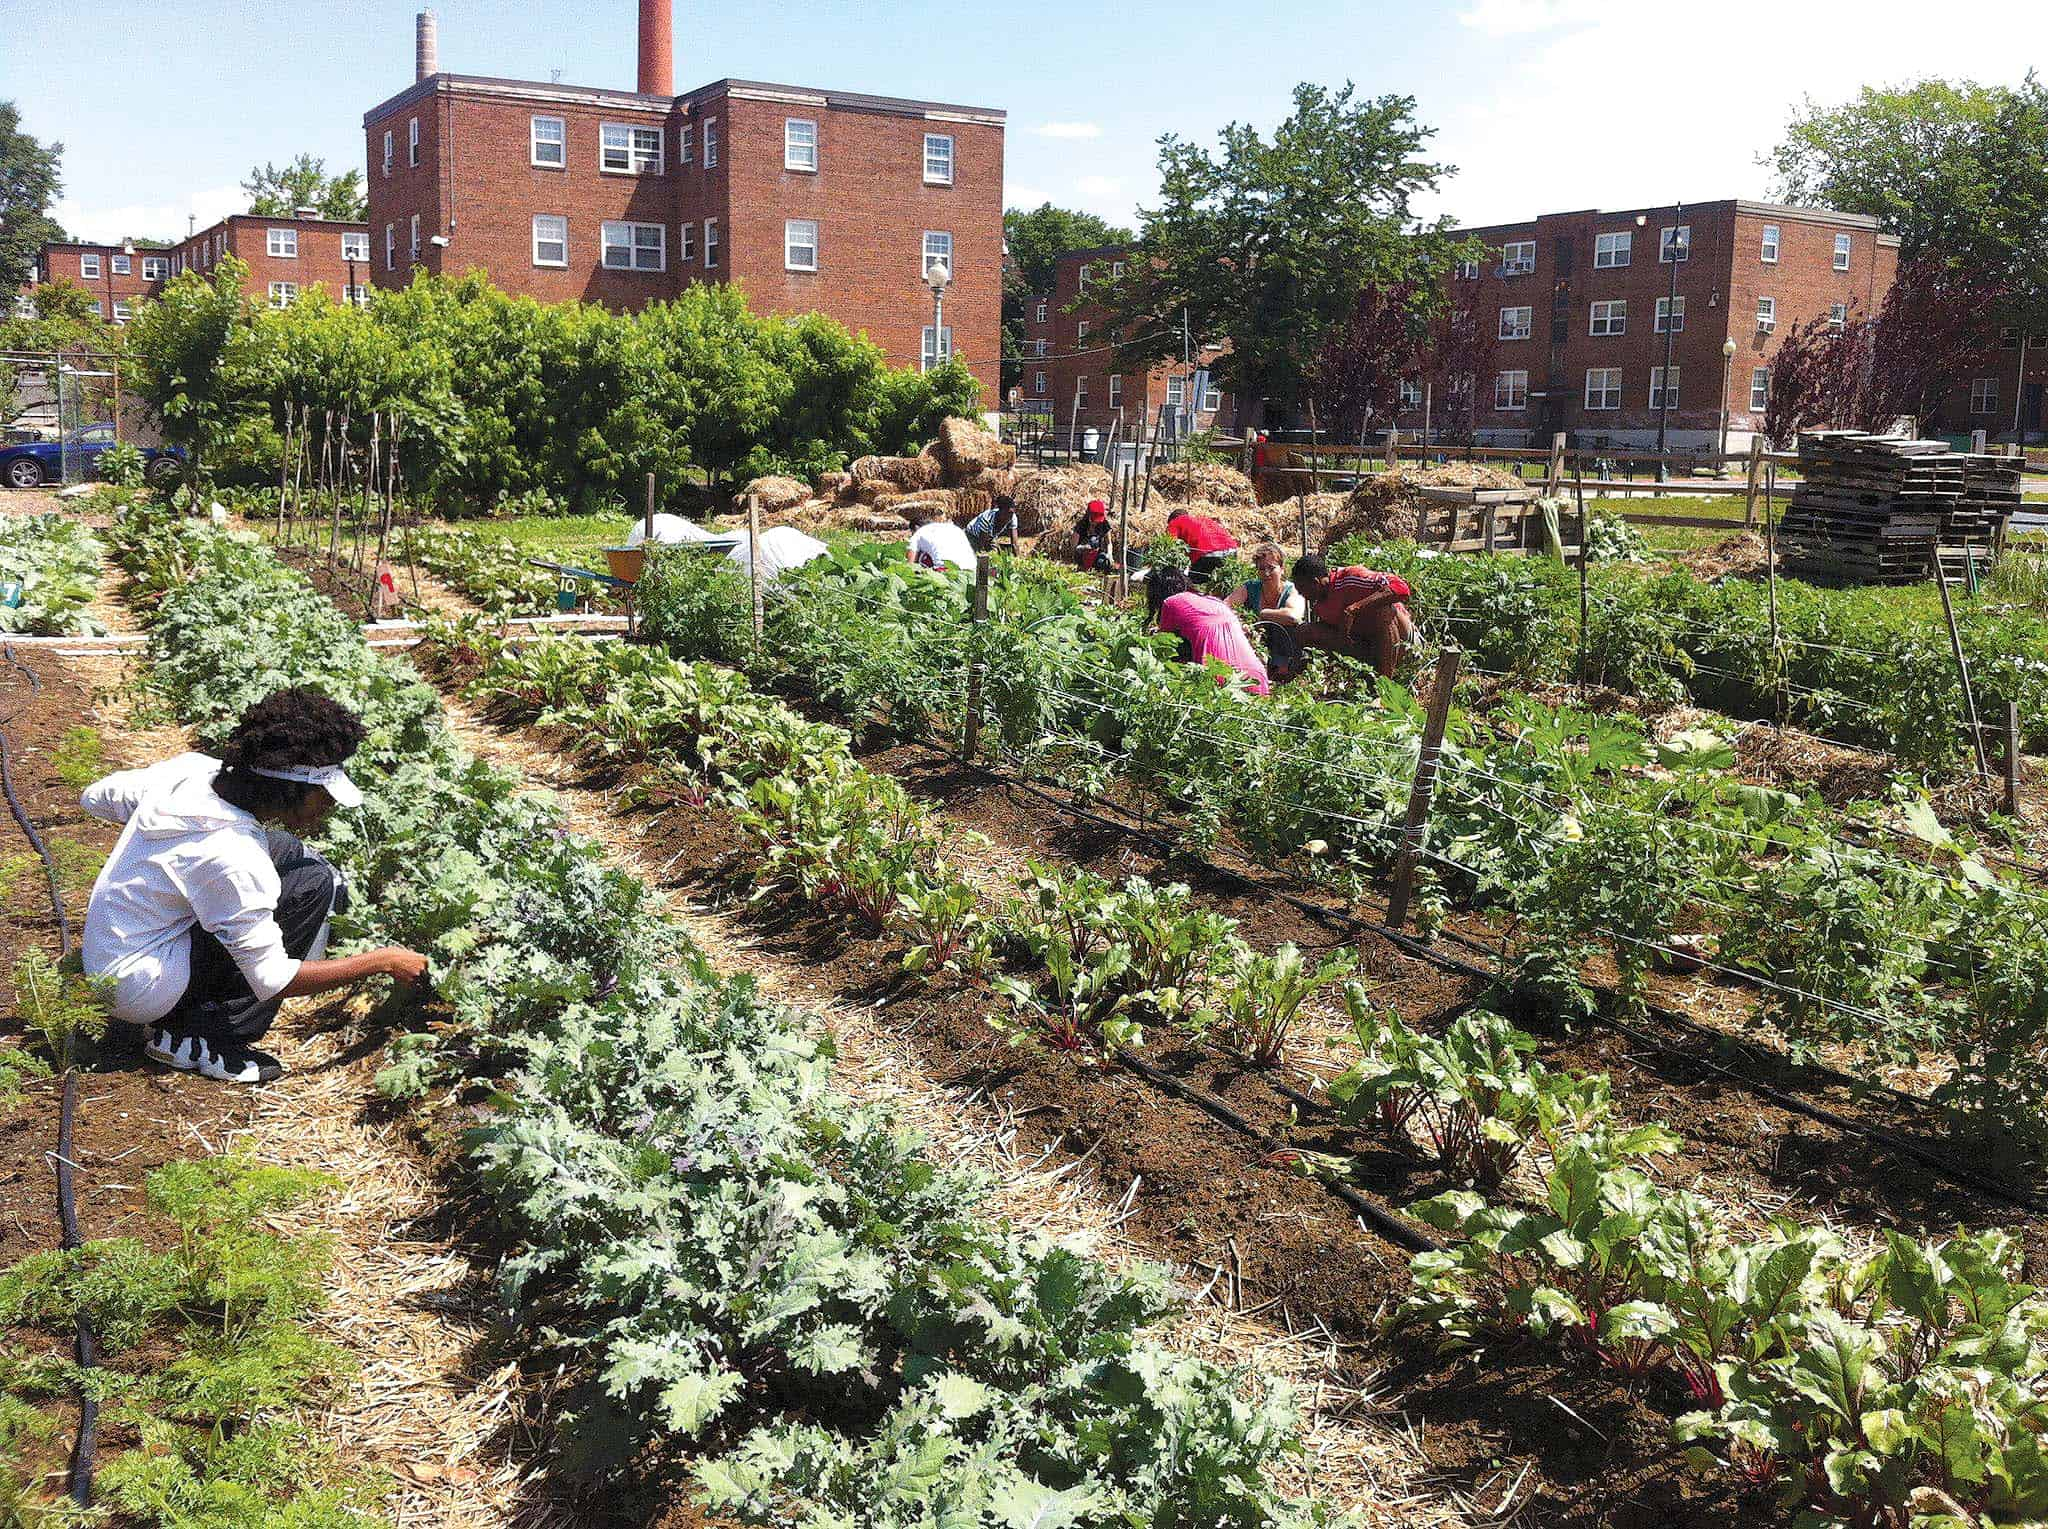 Photo courtesy of Common Good city farm